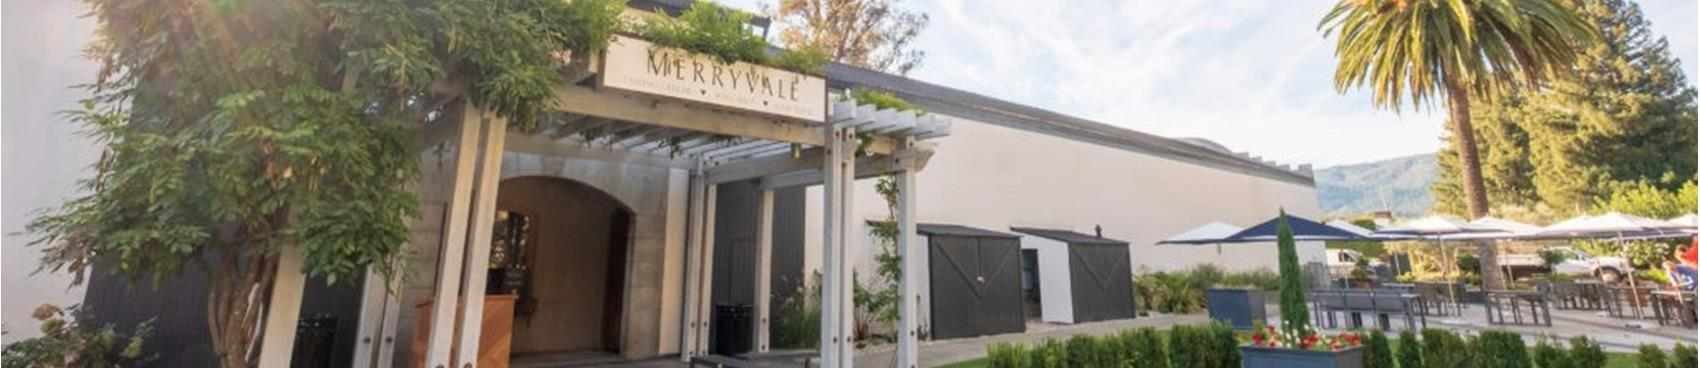 Merryvale & Starmont Harvest Party